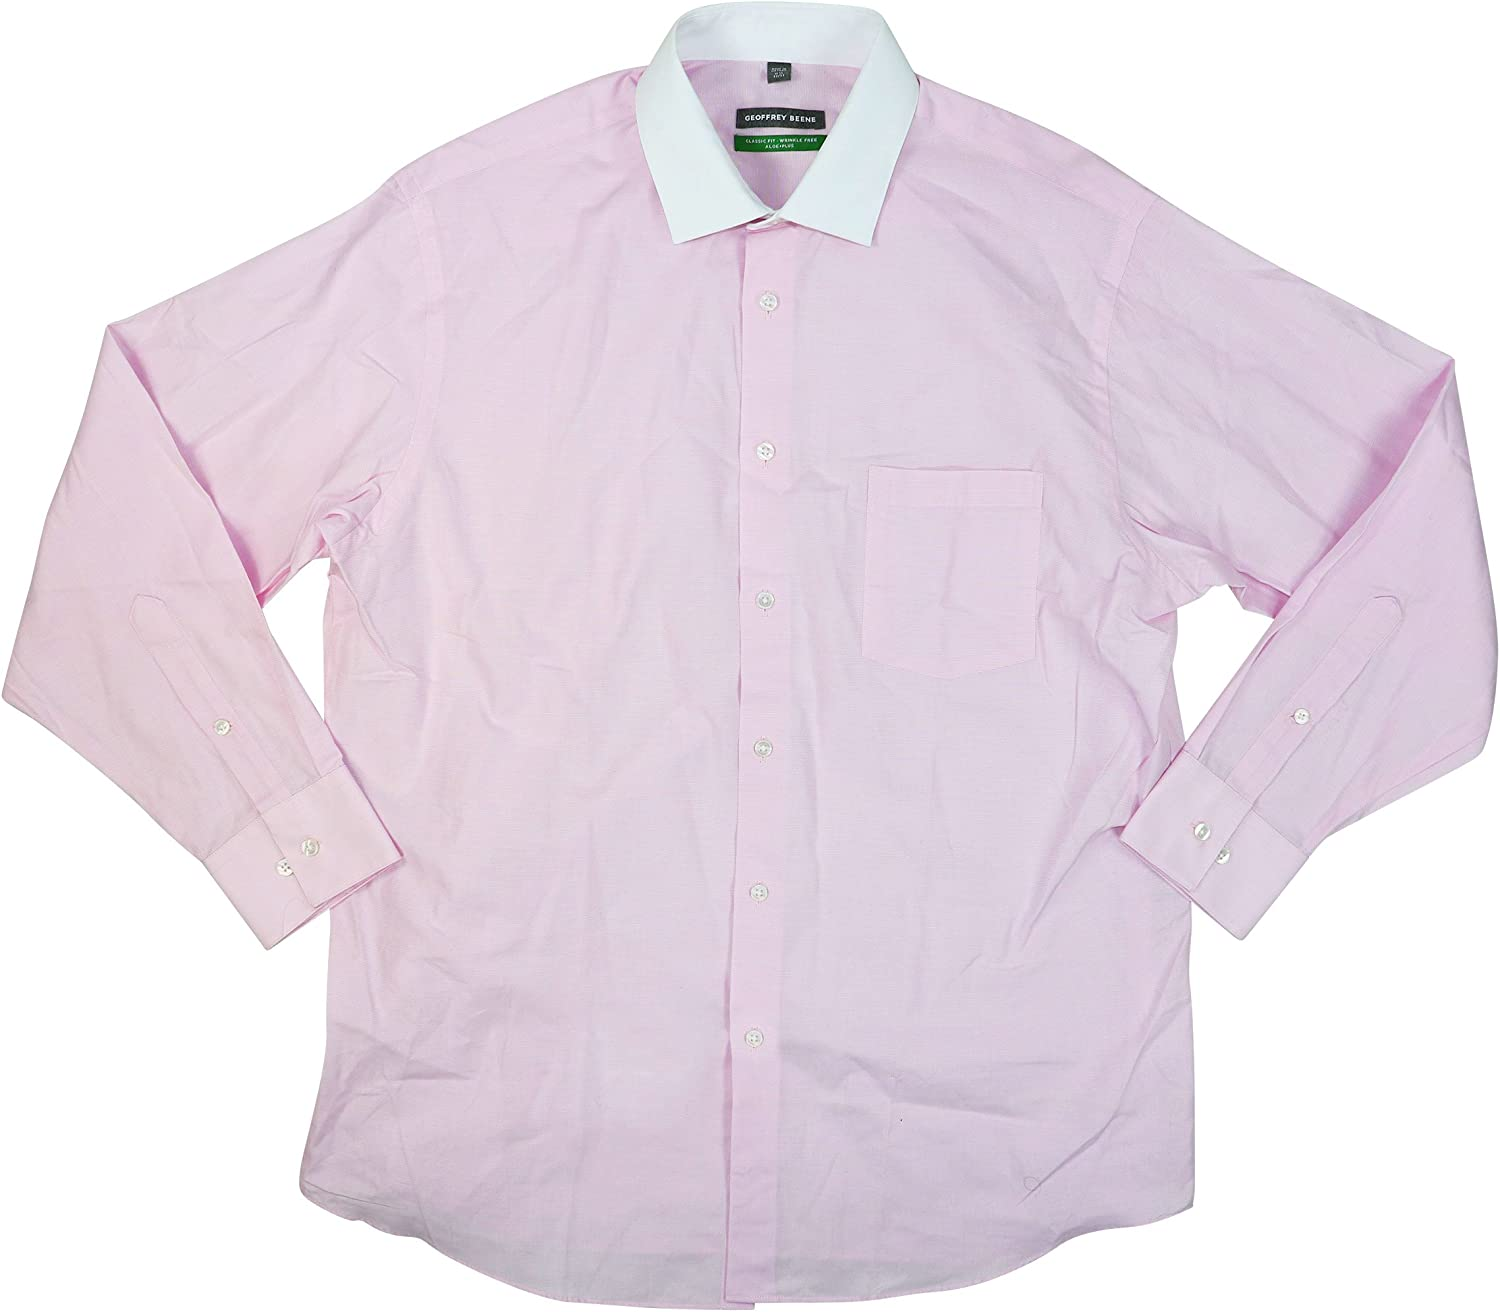 Geoffrey Beene Classic Fit Wrinkle Free Long Sleeve Button Down Shirt (Pink Mist, 17.5 36-37)